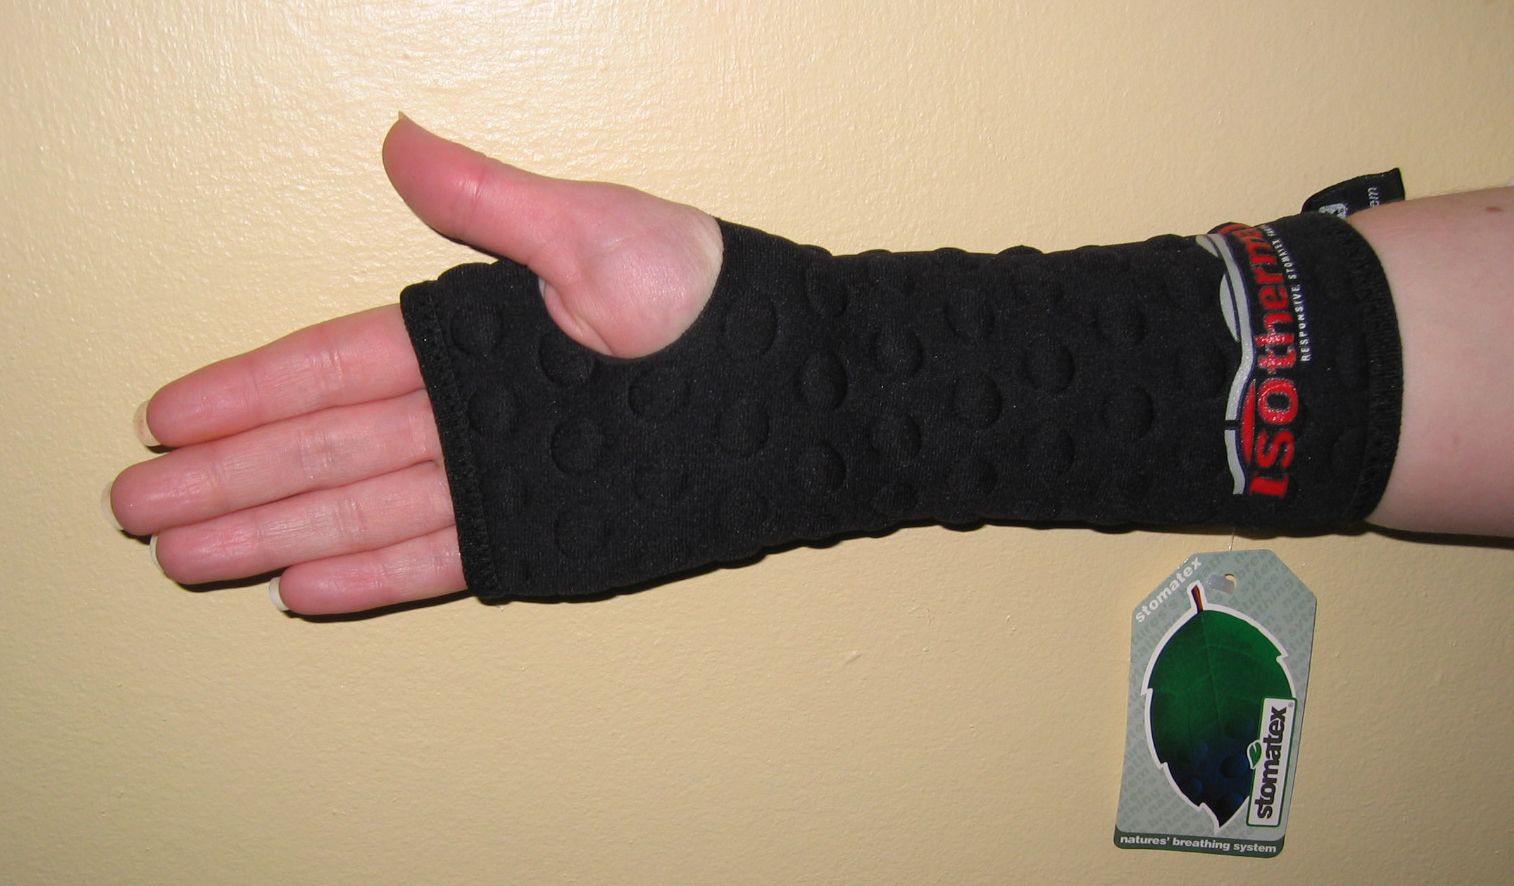 WRIST SLEEVE SUPPORT - BREATHABLE - £12.95 - Sizes available S, M, L & XL (Fit right or left hand)